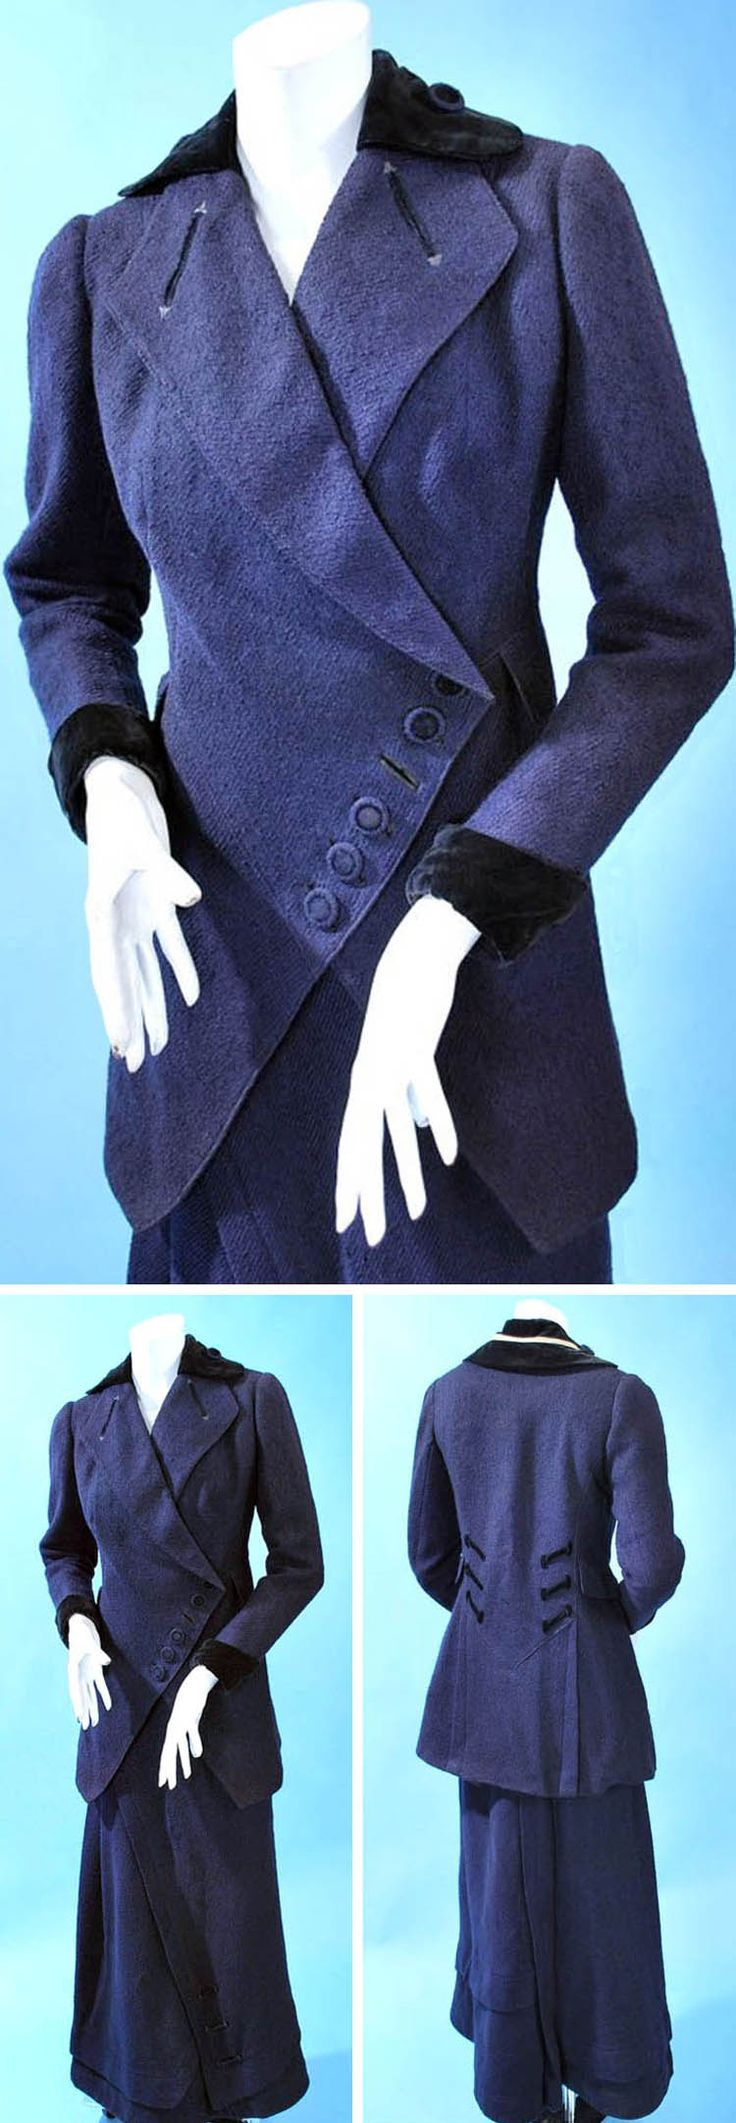 Slubby navy wool walking suit, ca. 1910-15. Imaginative closure design on jacket. Velvet cuffs & collar. Lined in silk satin. Back-closing skirt with topstitched asymmetrical pleat across skirt and along hem. Extant Gowns